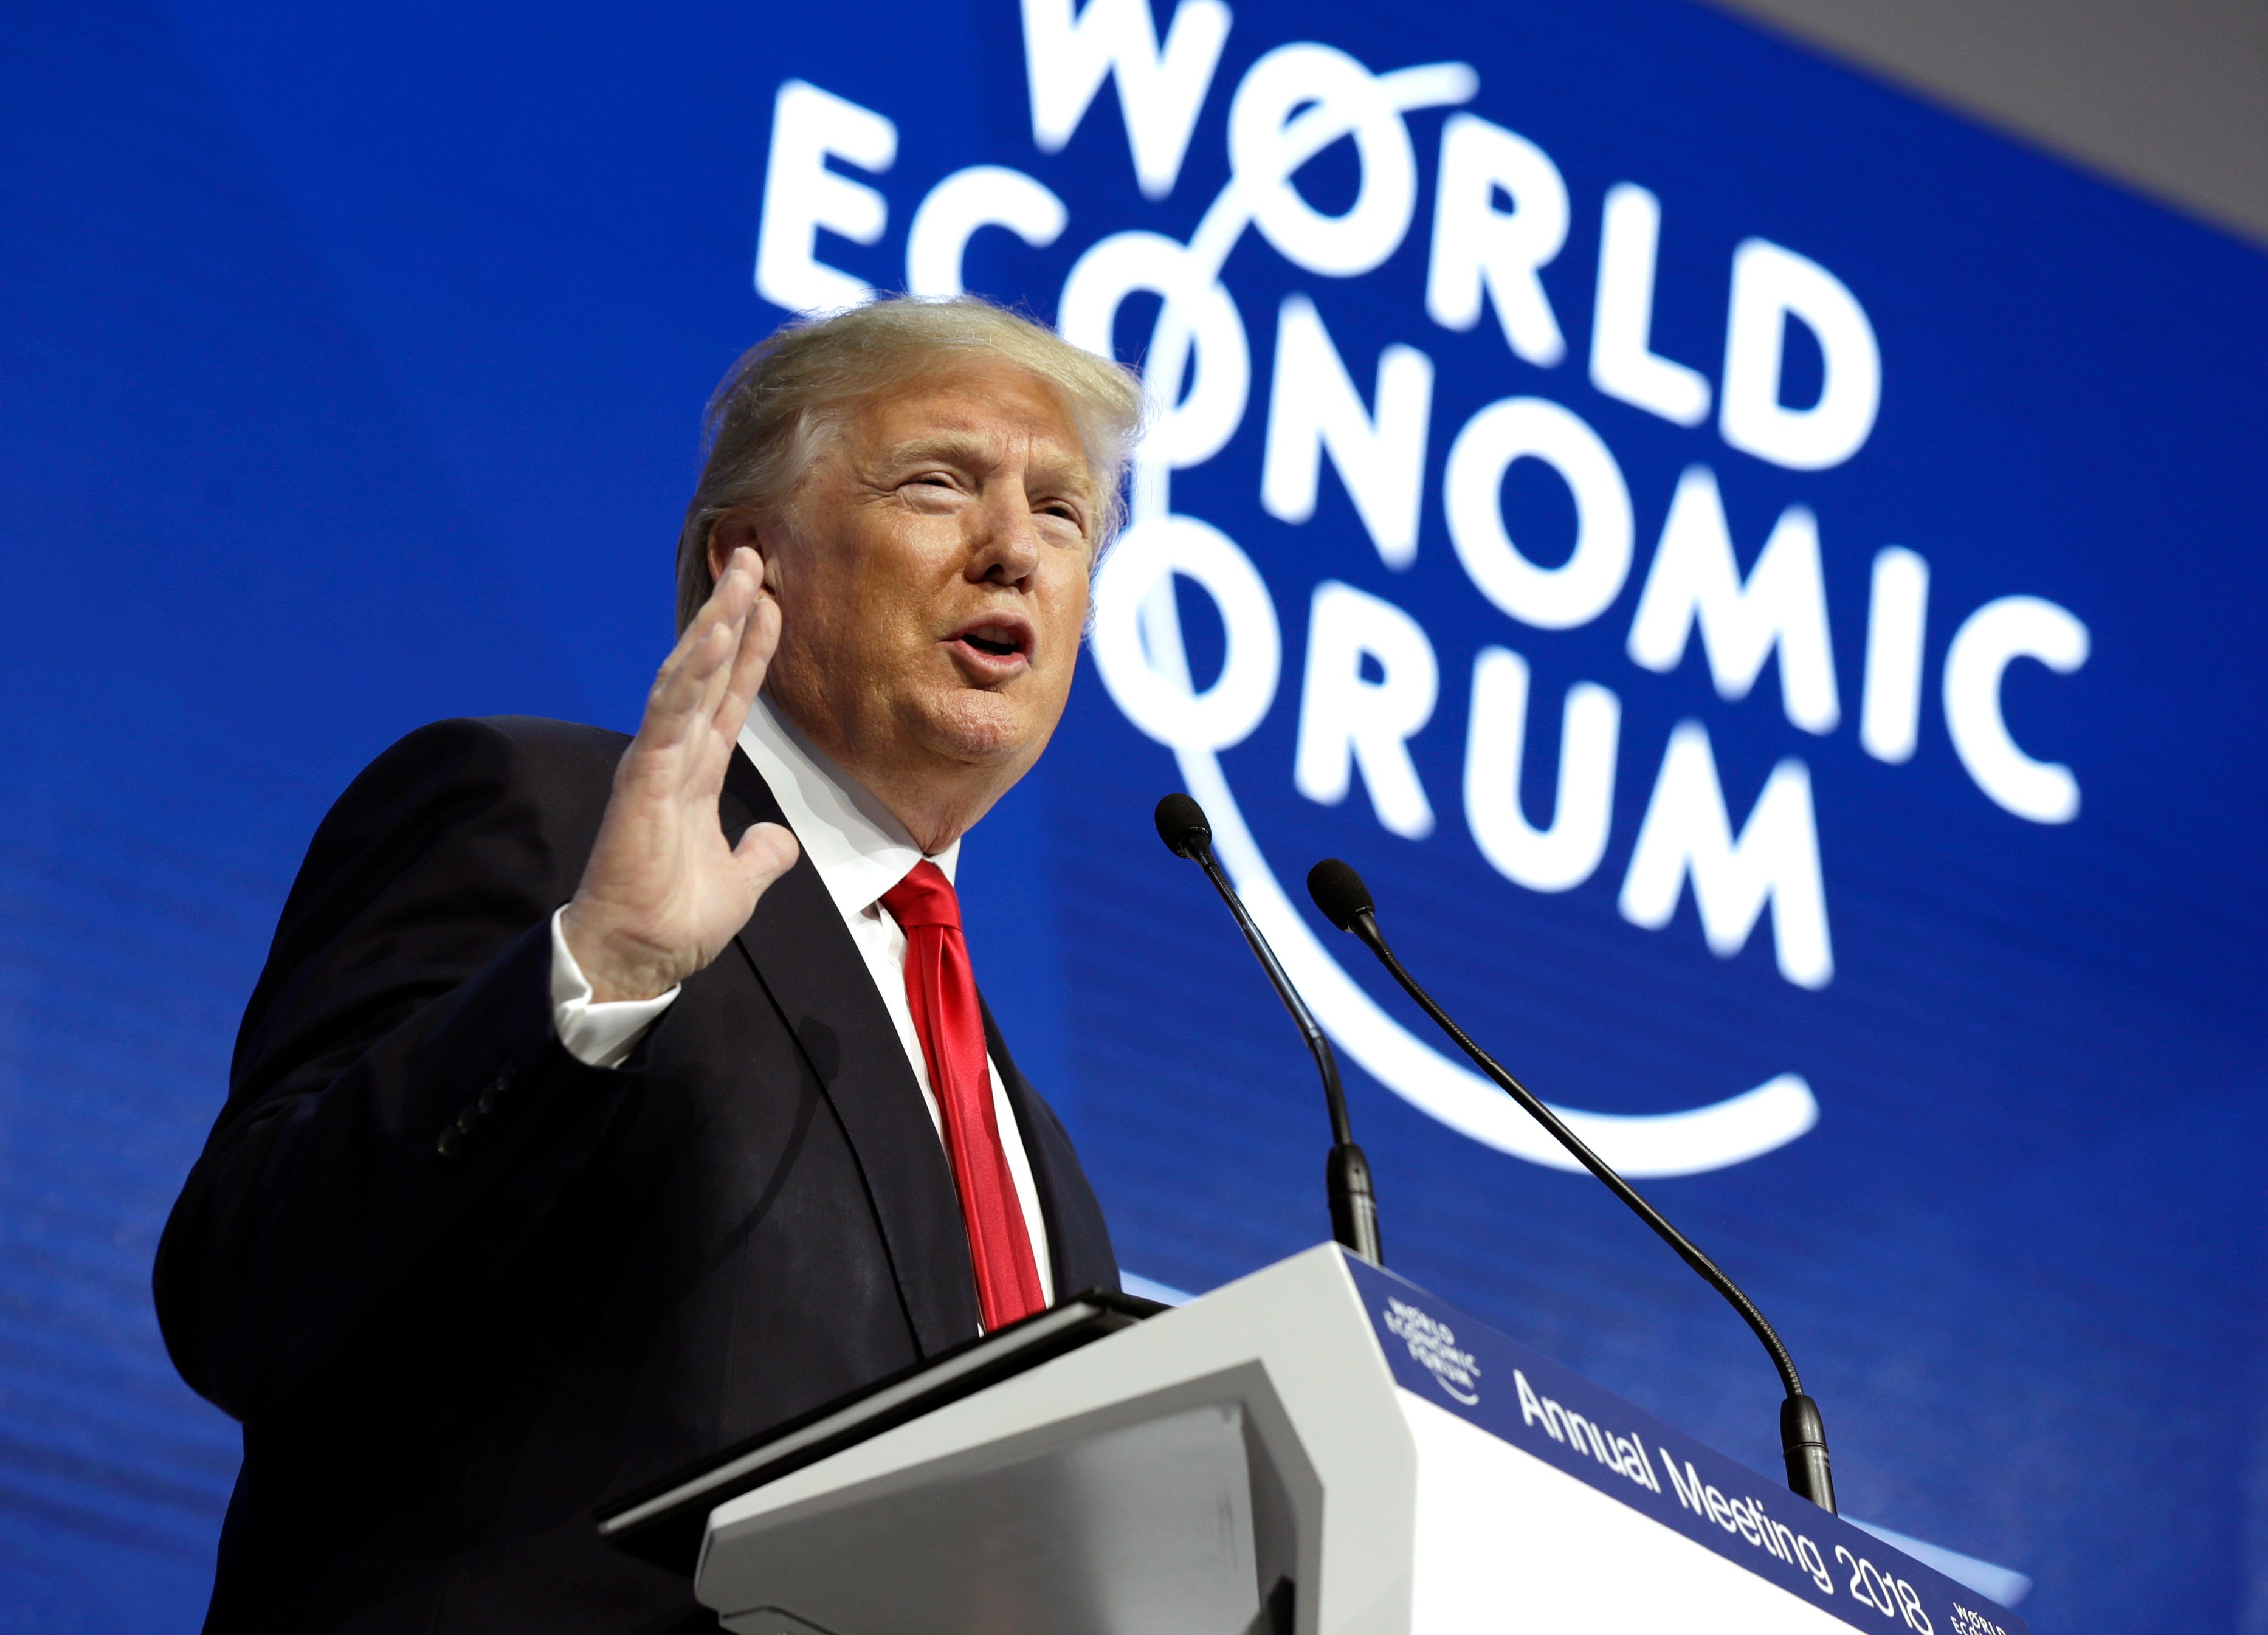 trump-cancels-us-delegation-trip-to-davos-economic-conference-over-government-shutdown